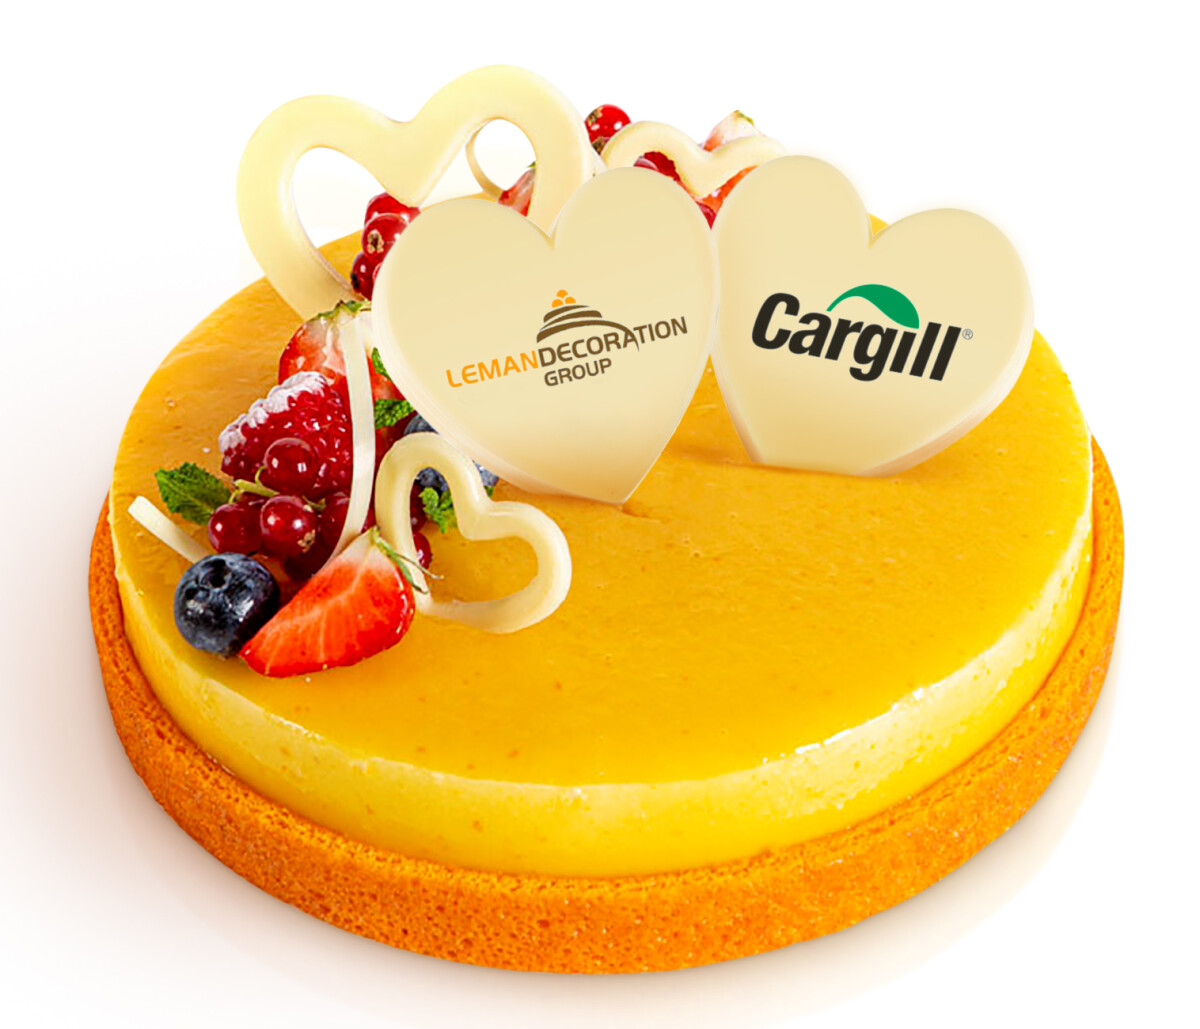 Cargill to expand gourmet chocolate offering with new acquisition